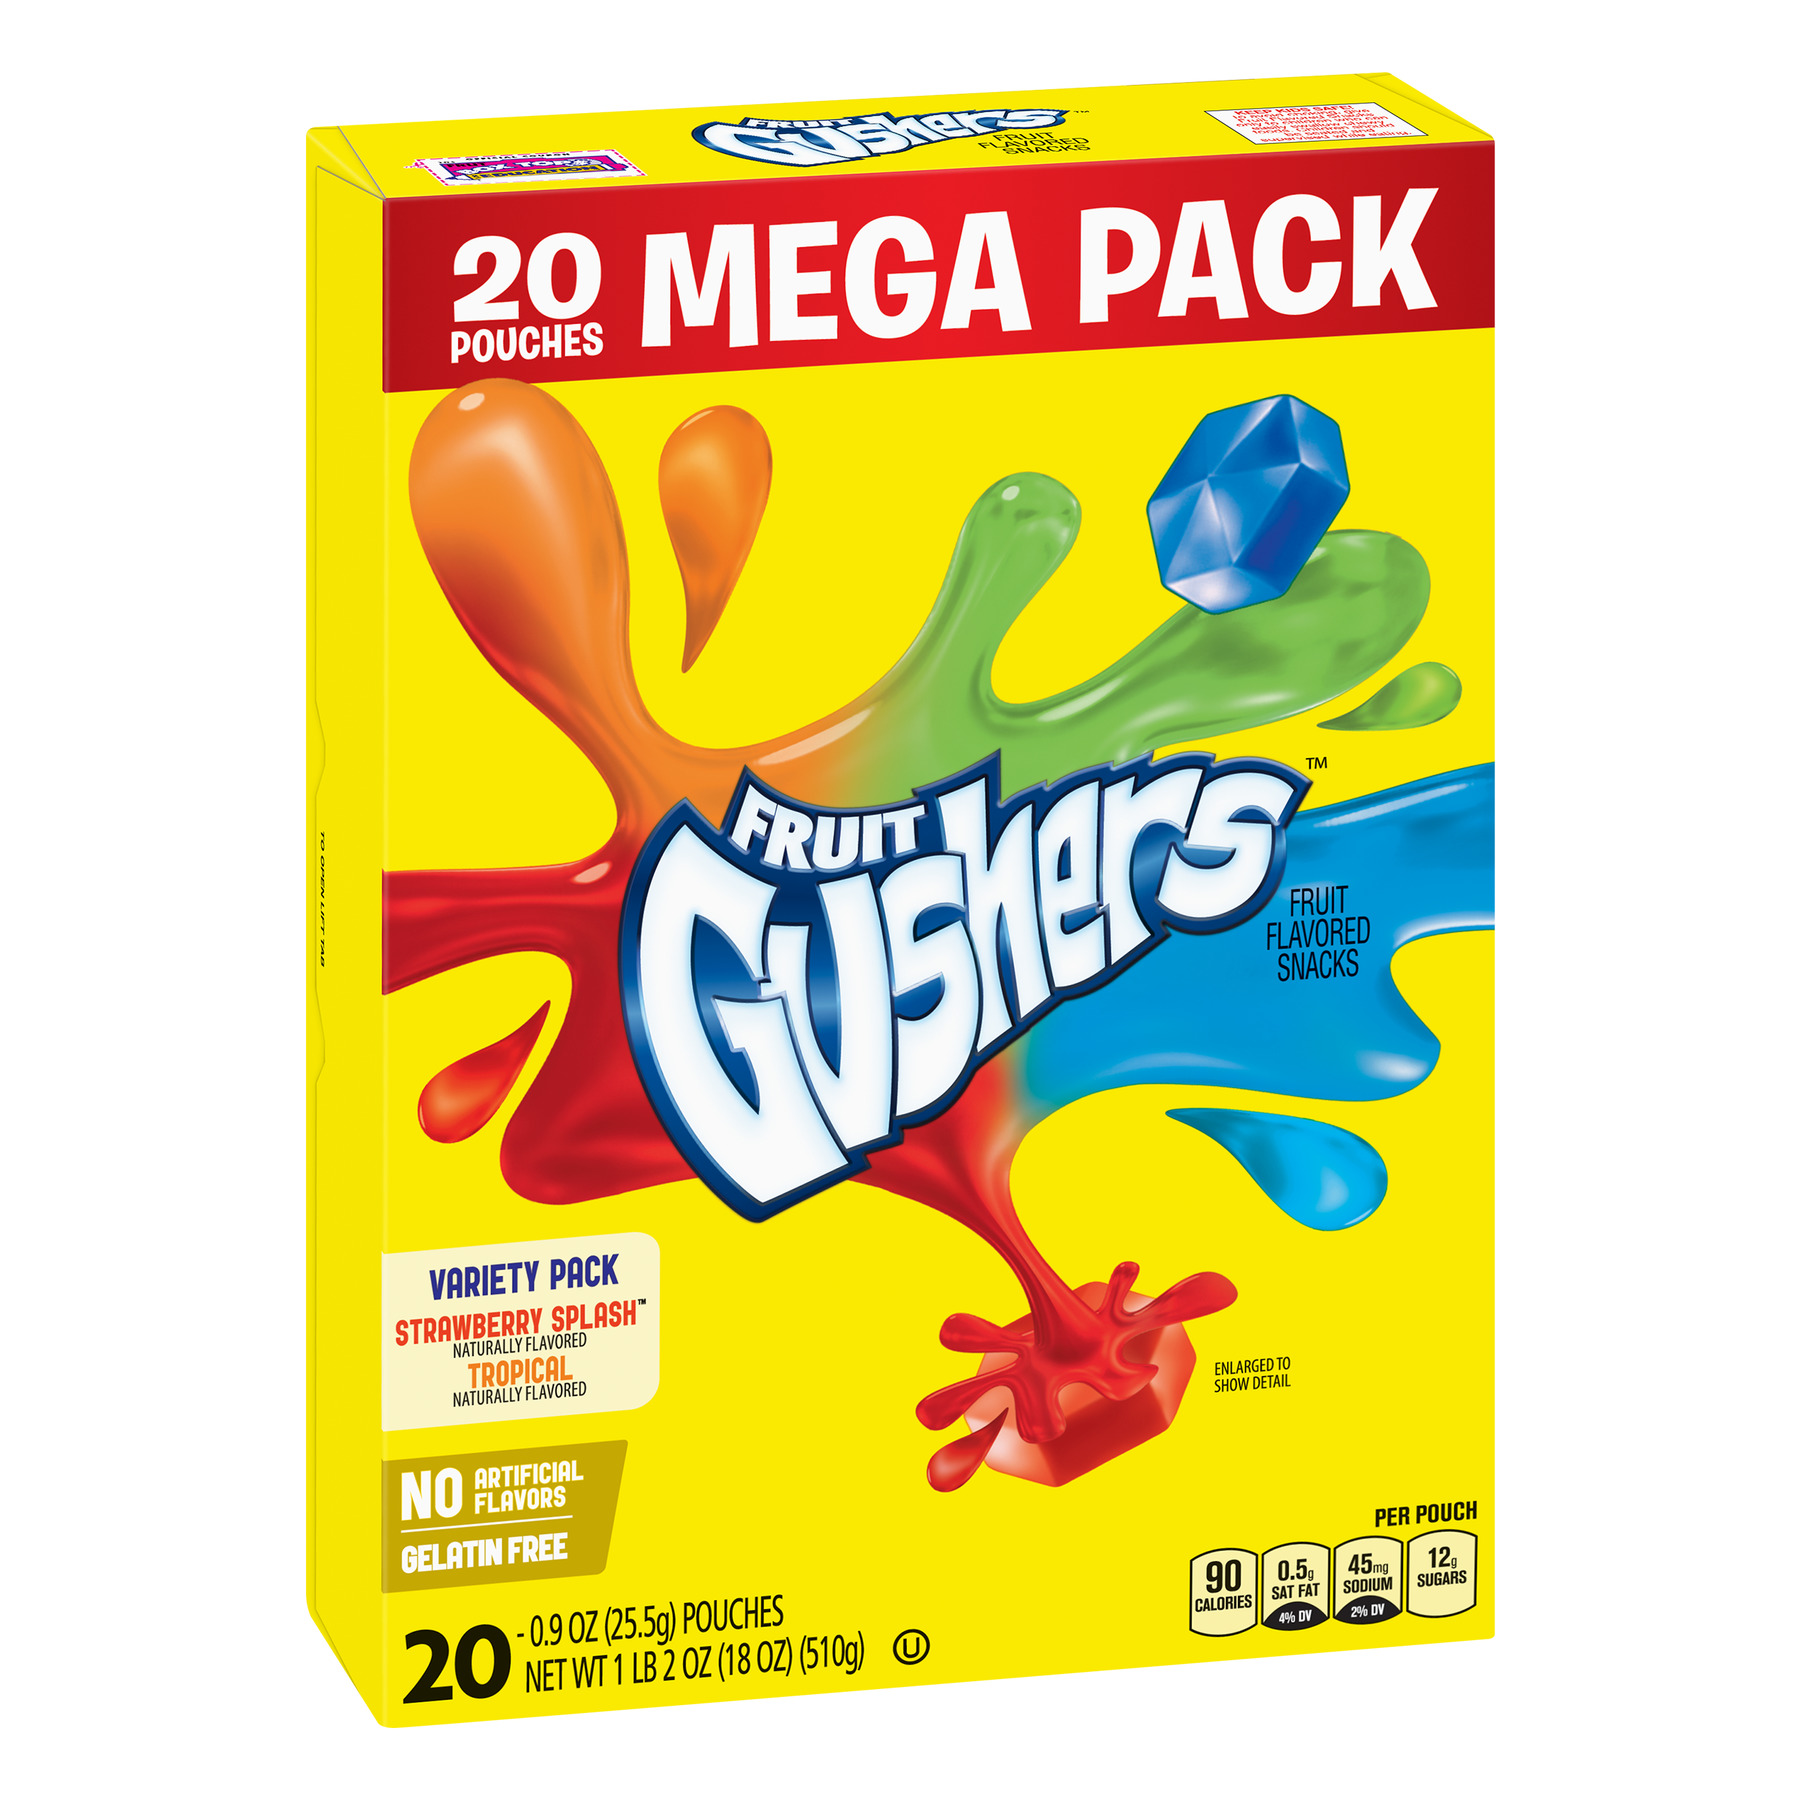 Fruit Snacks Gushers Mega Pack Variety Pack 20 Pouches 0.9 oz Each